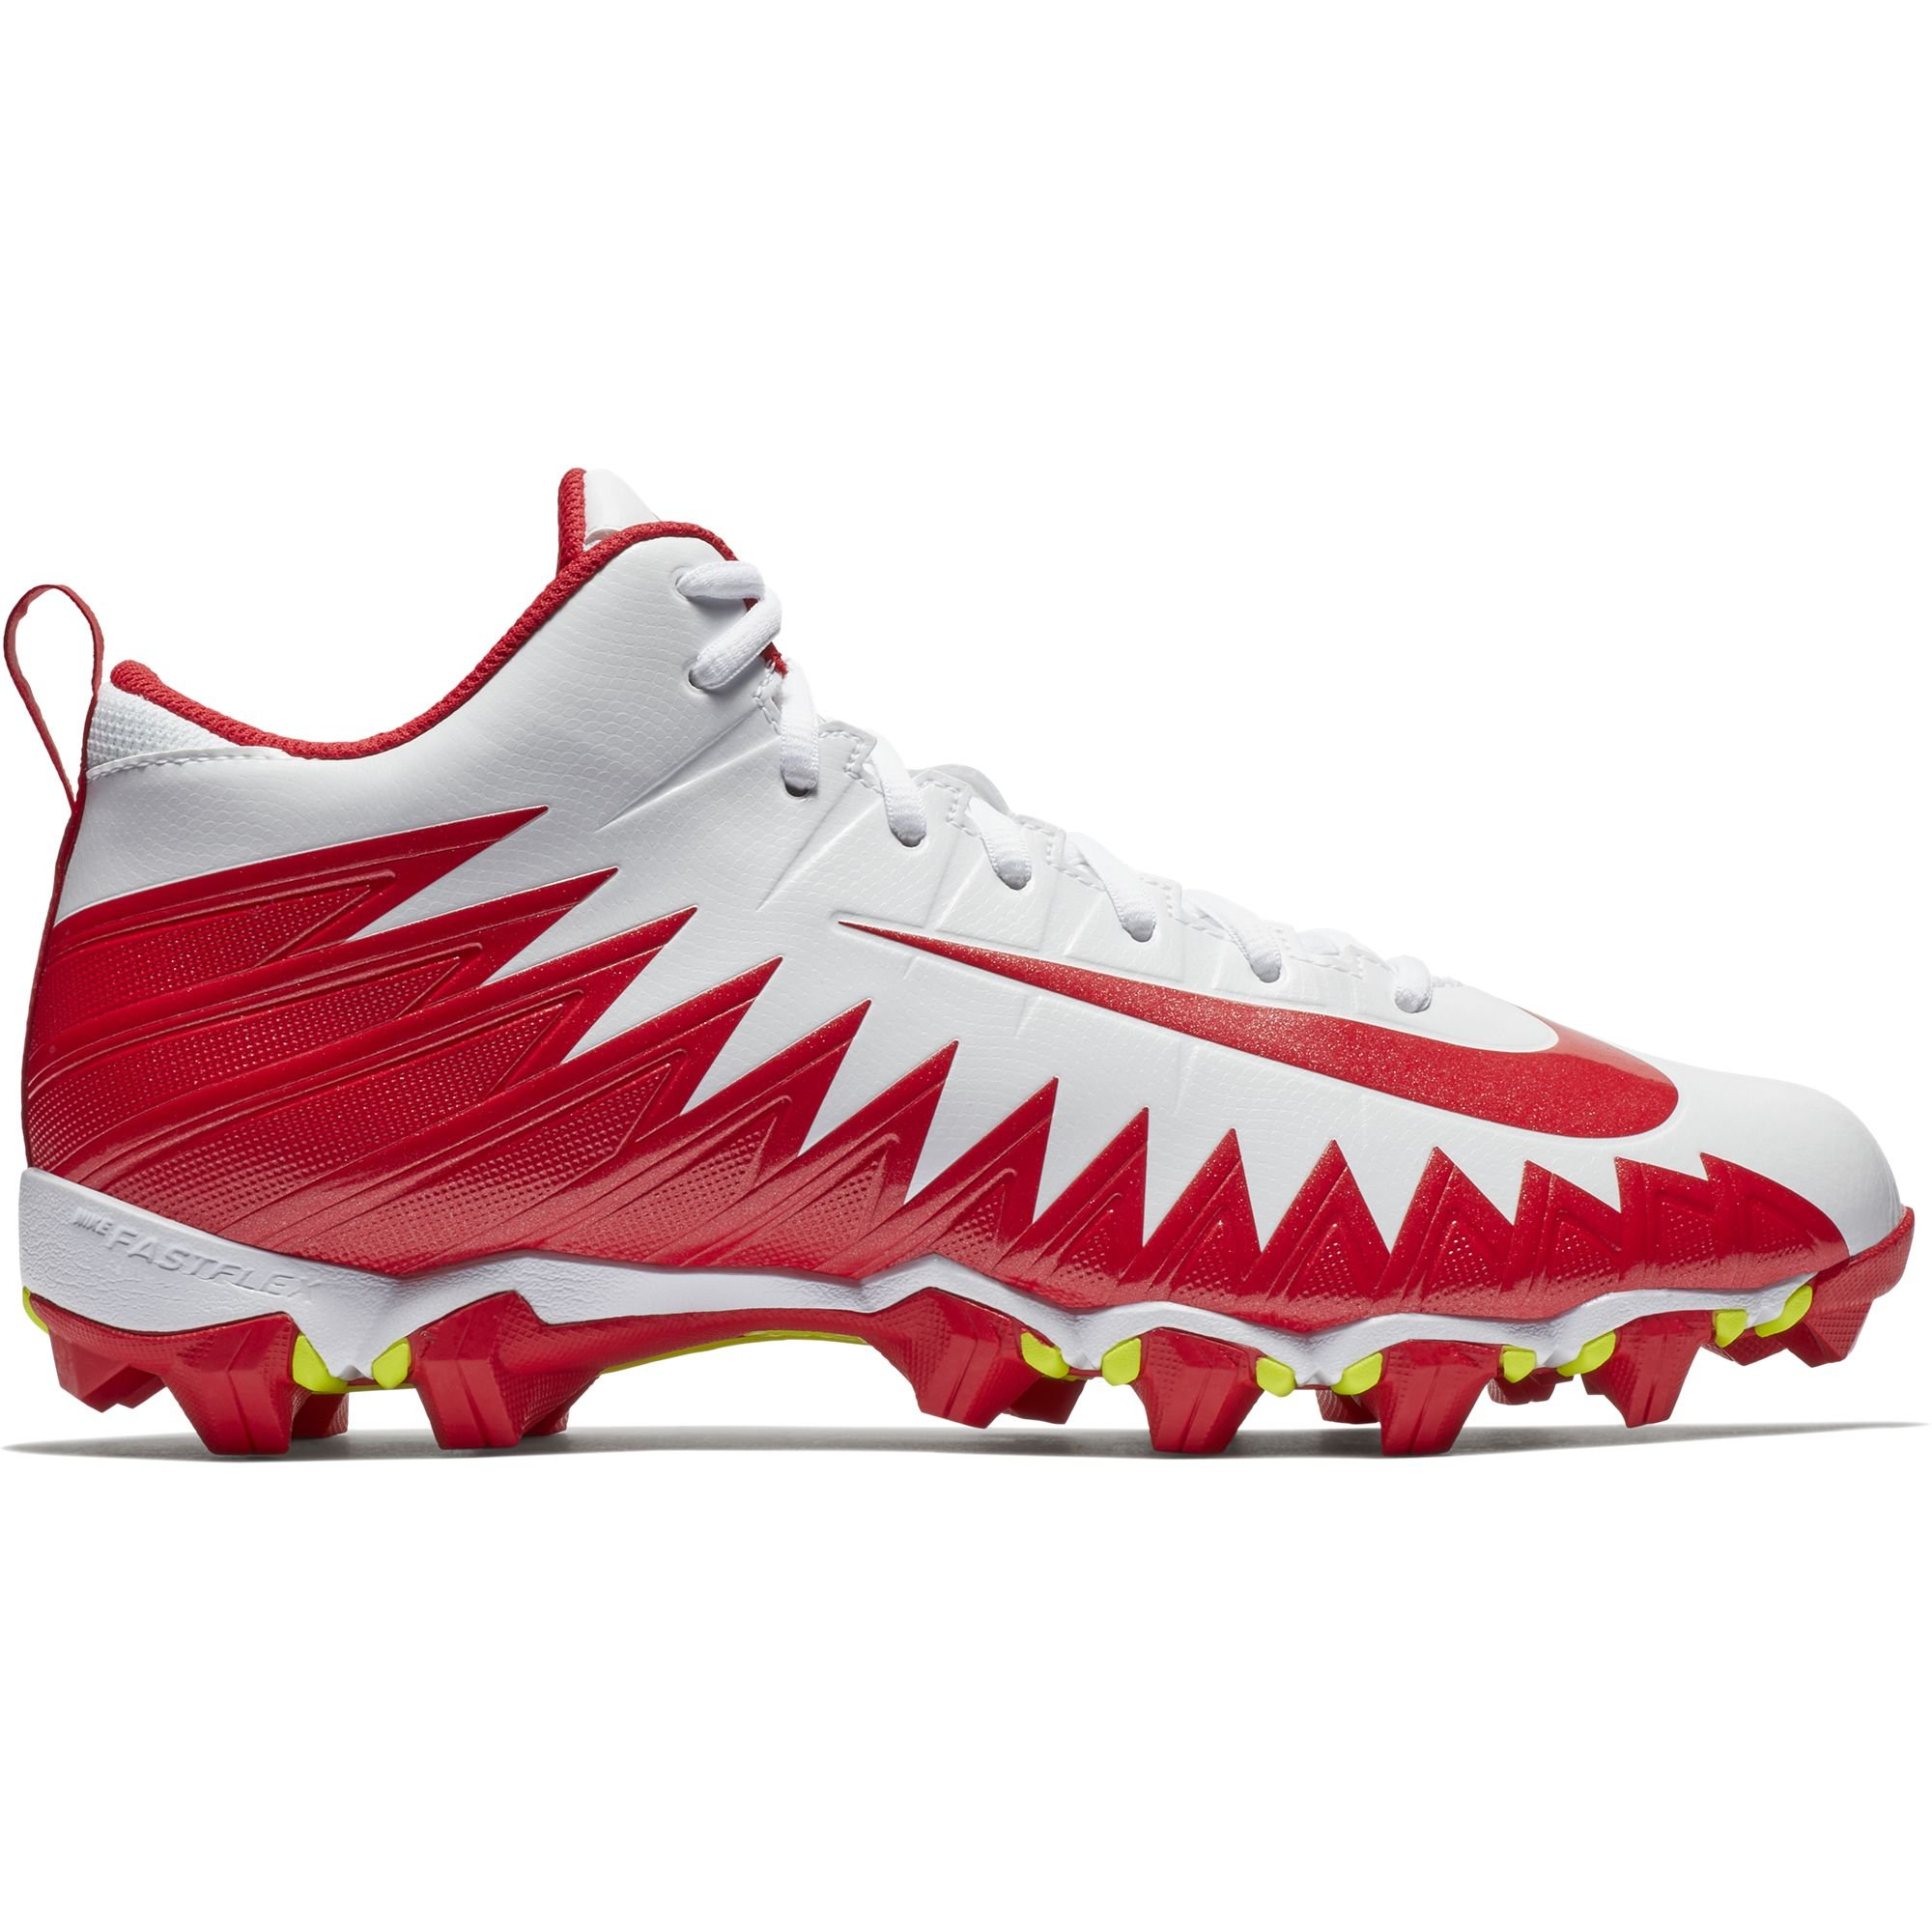 NIKE Men's Alpha Menace Shark Football Cleat White/University Red Size 8 M US